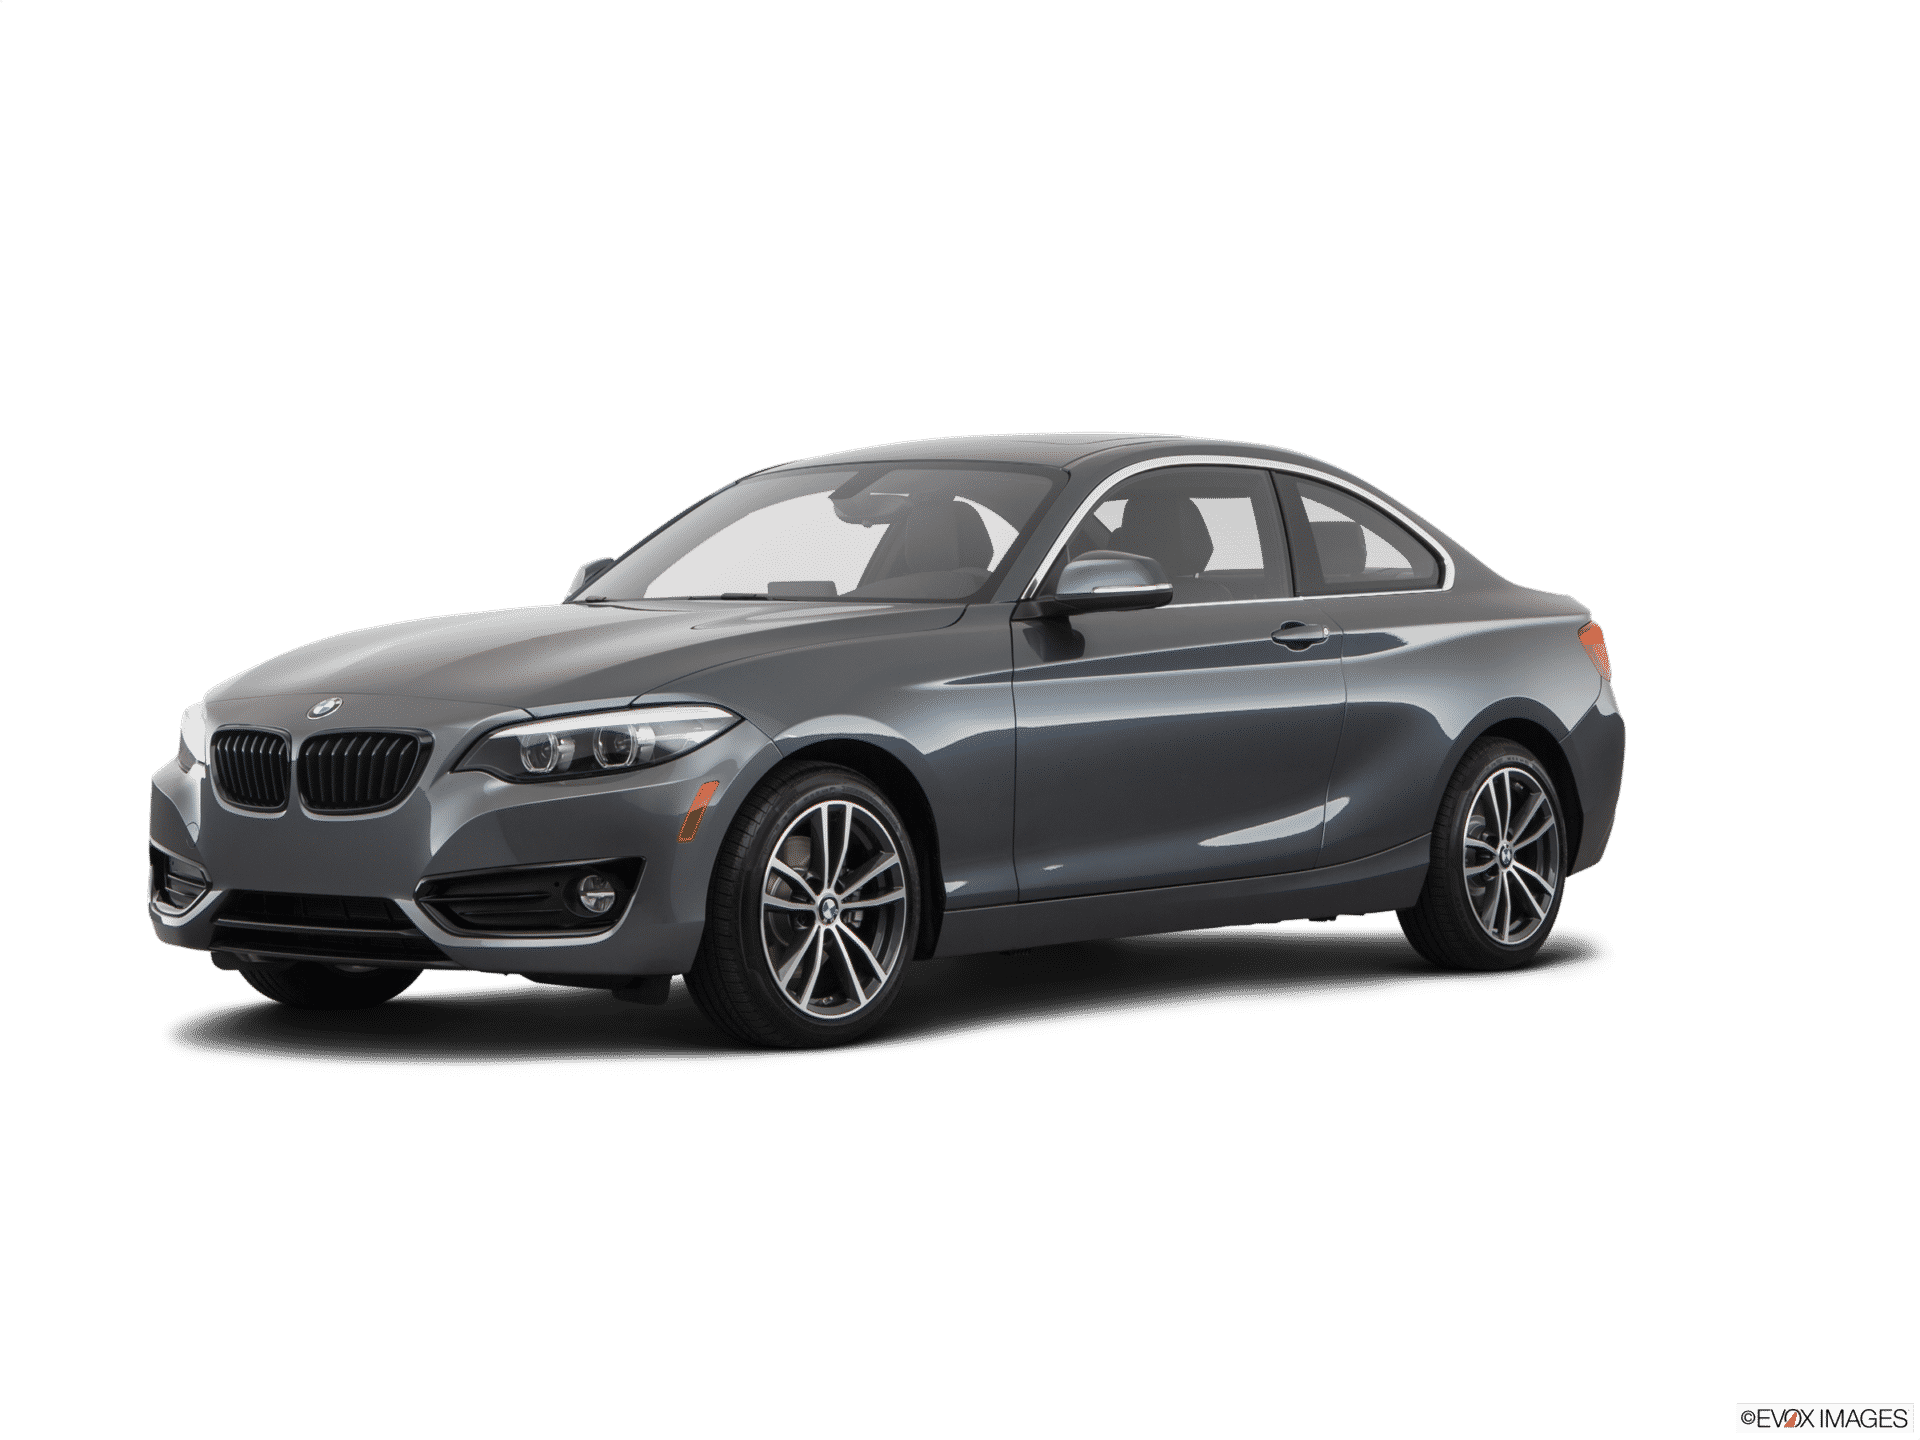 2019-BMW-2 Series-360SpinFrame_12561_032_2400x1800